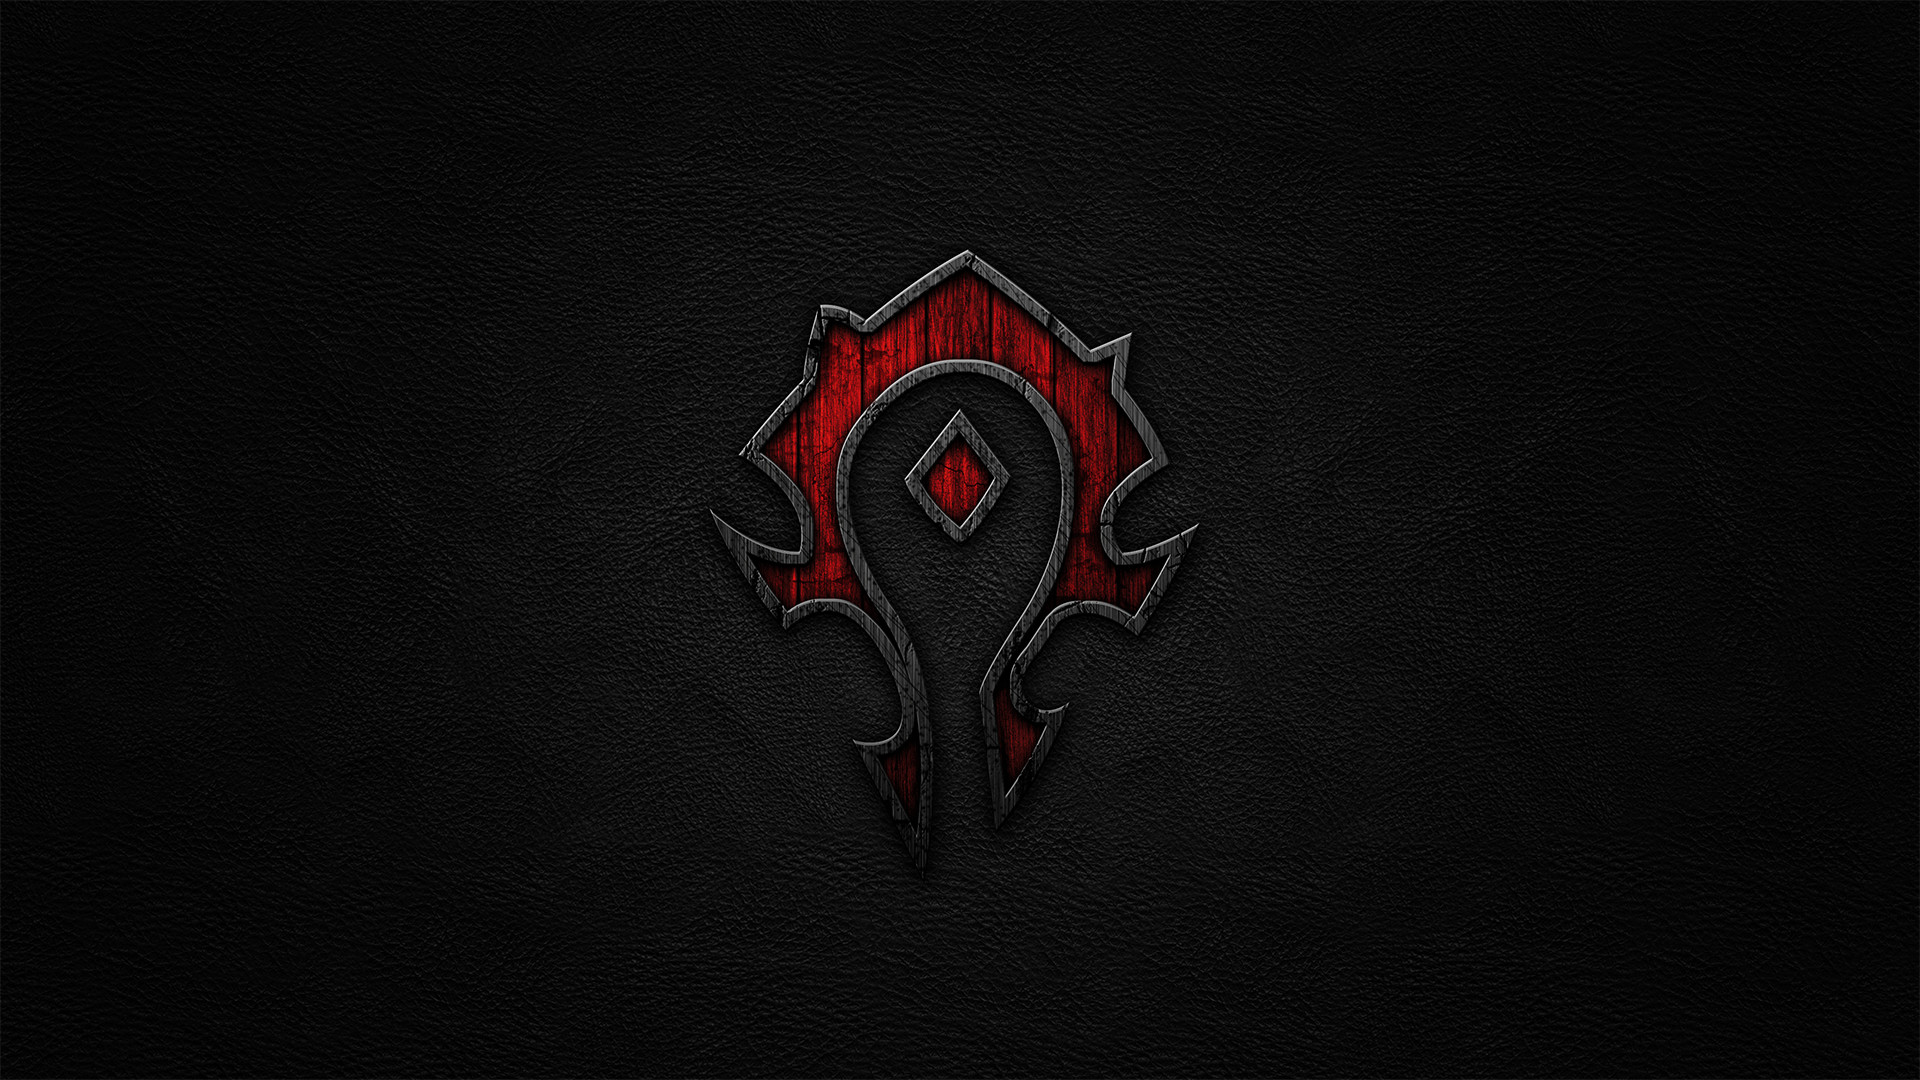 1920x1080 Photo of Horde HD HD (p.5193291) - NMgnCP PC Gallery